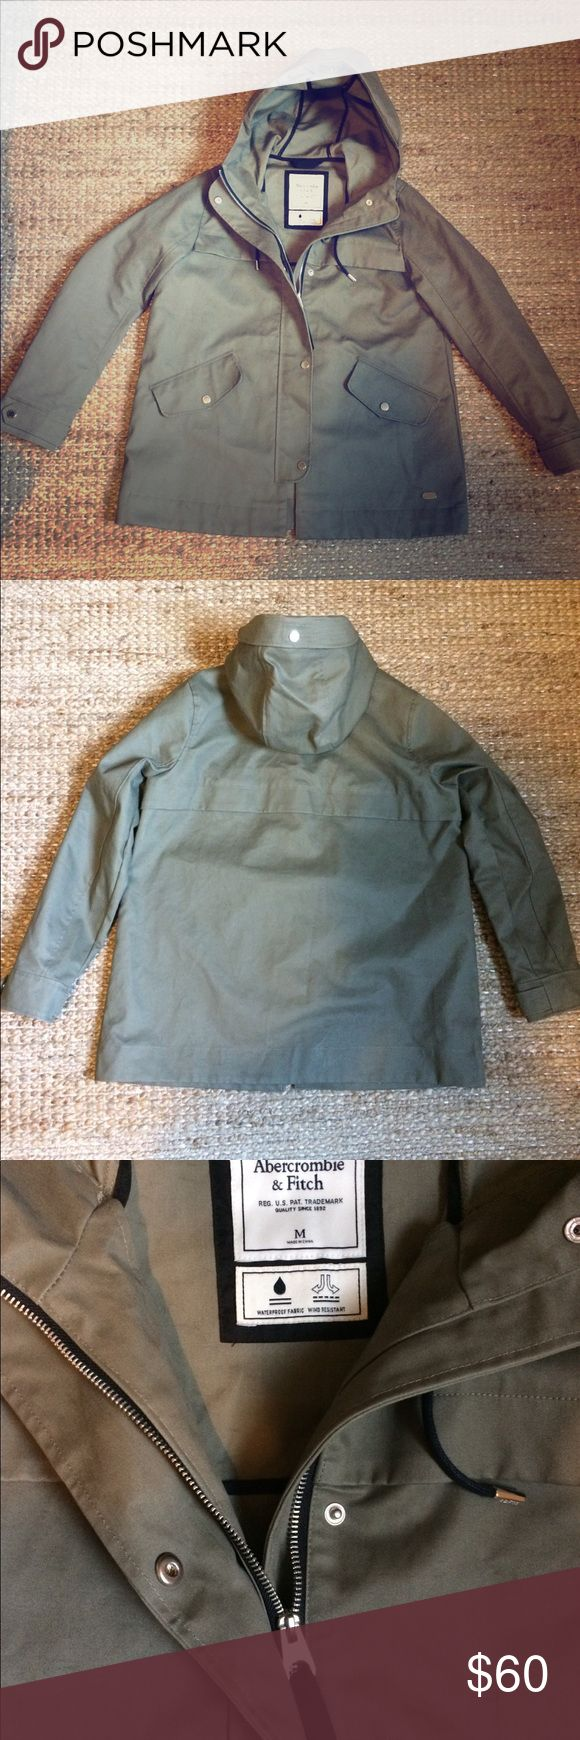 Abercrombie and Fitch Green Canvas Rain Jacket, M This Abercrombie and Fitch jacket is a perfect olive/army green color. Silver buttons and zippers add a bit of flair. The material is a water resistant canvas, and the nature of the fabric gives it a stiff quality. The arms run a bit small, while the body is cut wide for style. Worn once. In perfect condition. Abercrombie & Fitch Jackets & Coats